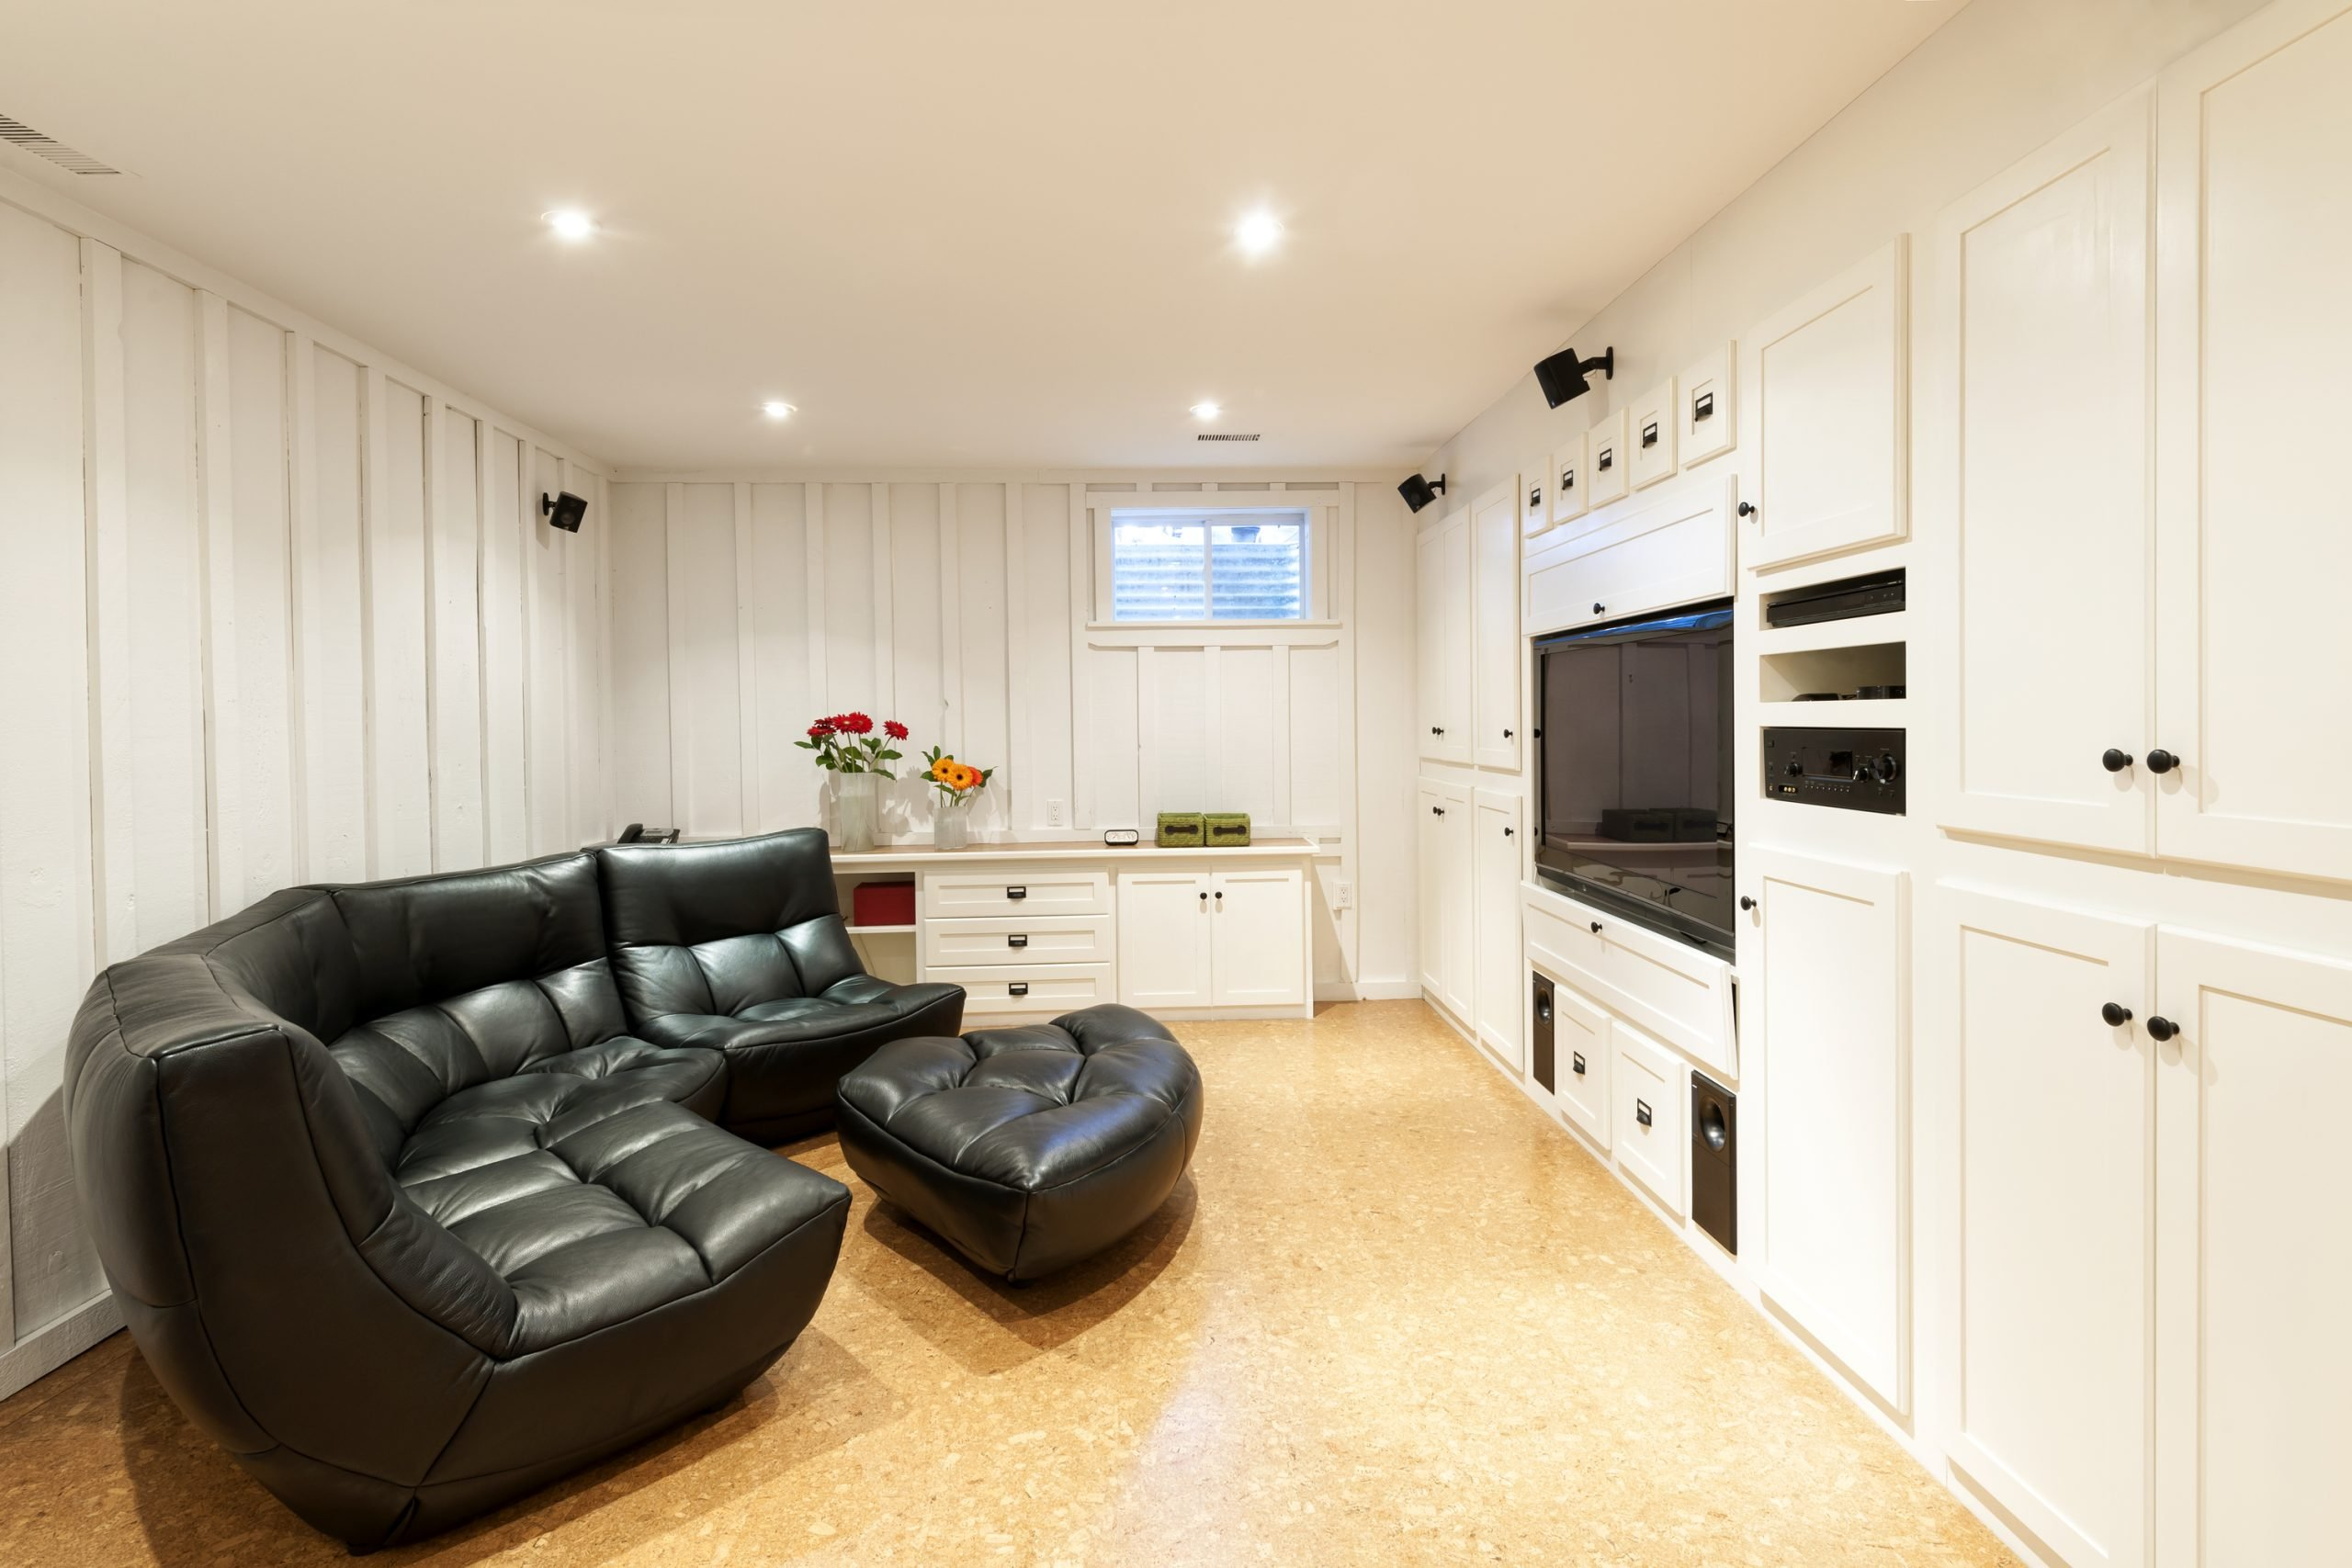 Main Line, PA General Basement Remodeling Contractor